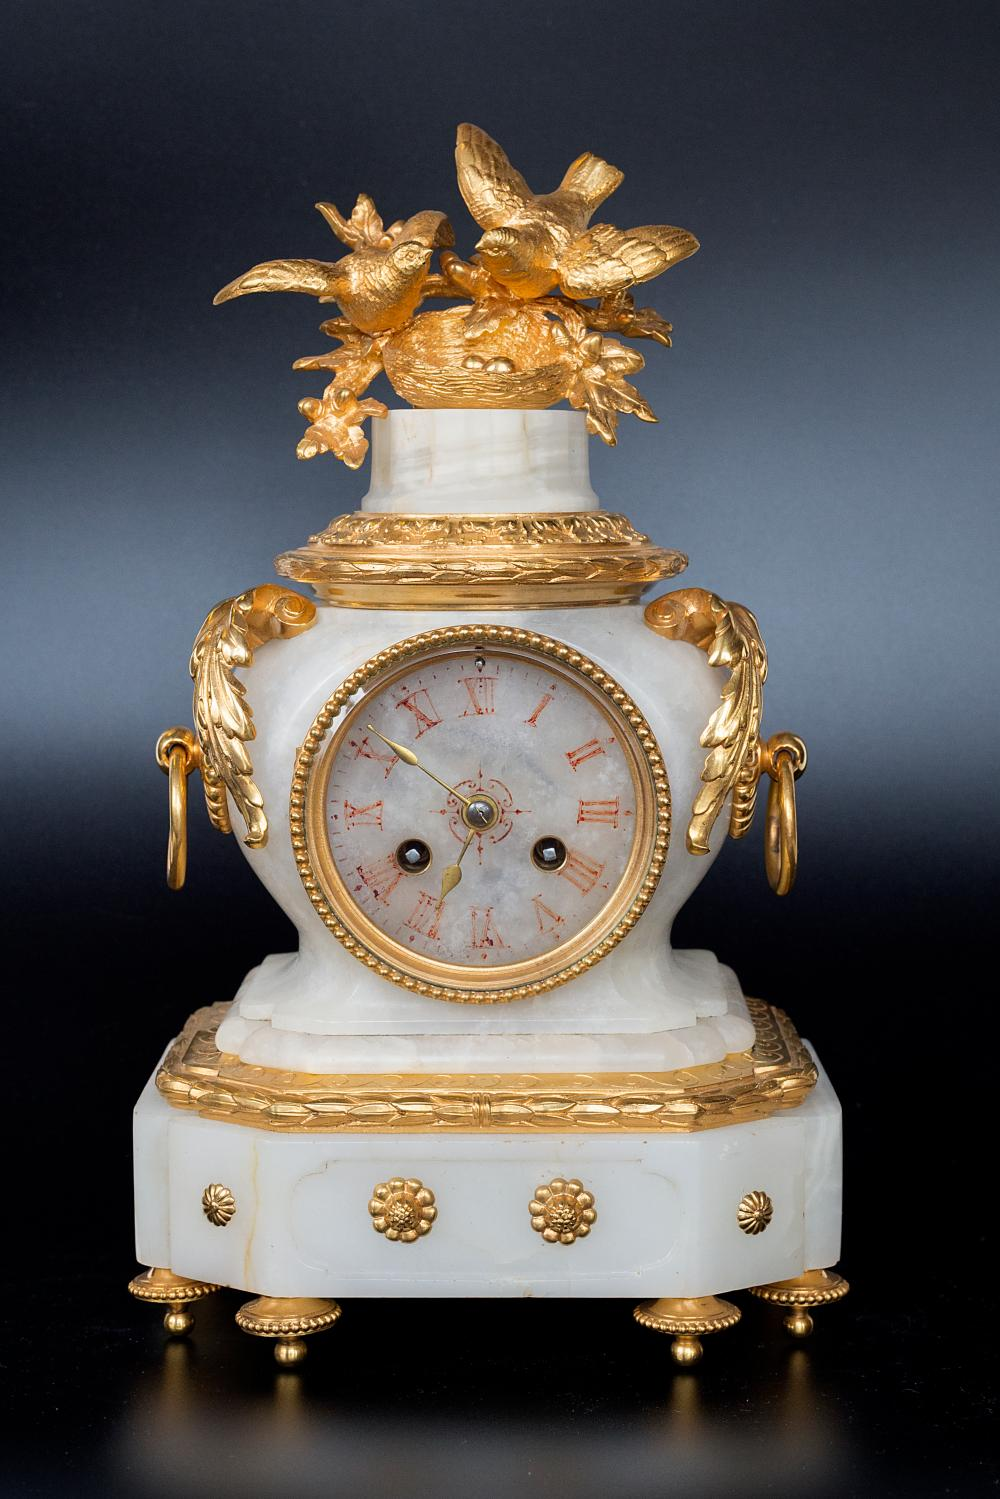 French manufacture 19th century decorative watch set in marble and gold-plated bronze